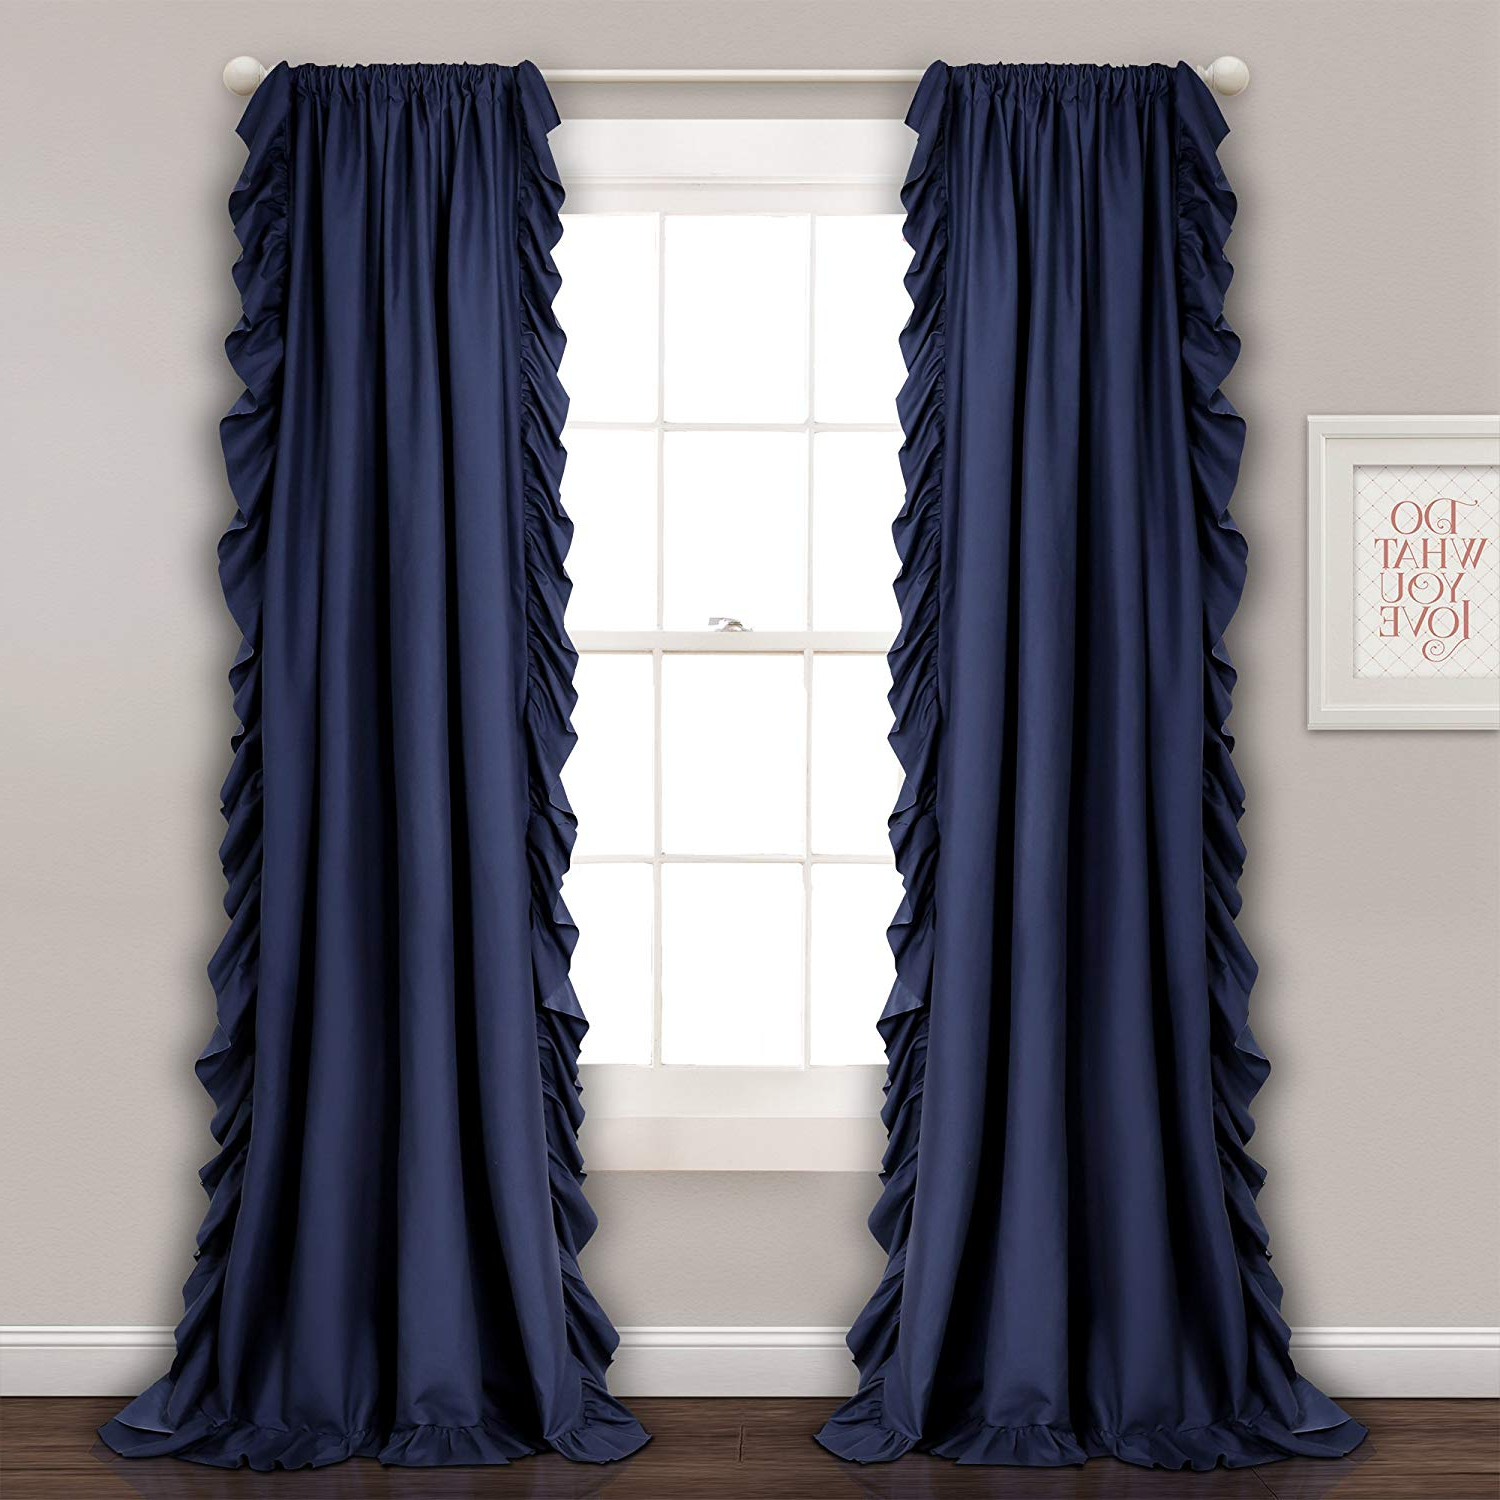 Lydia Ruffle Window Curtain Panel Pairs Regarding Best And Newest Lush Decor Reyna Window Curtain Panel Pair, 54 X 84, Navy (View 12 of 20)